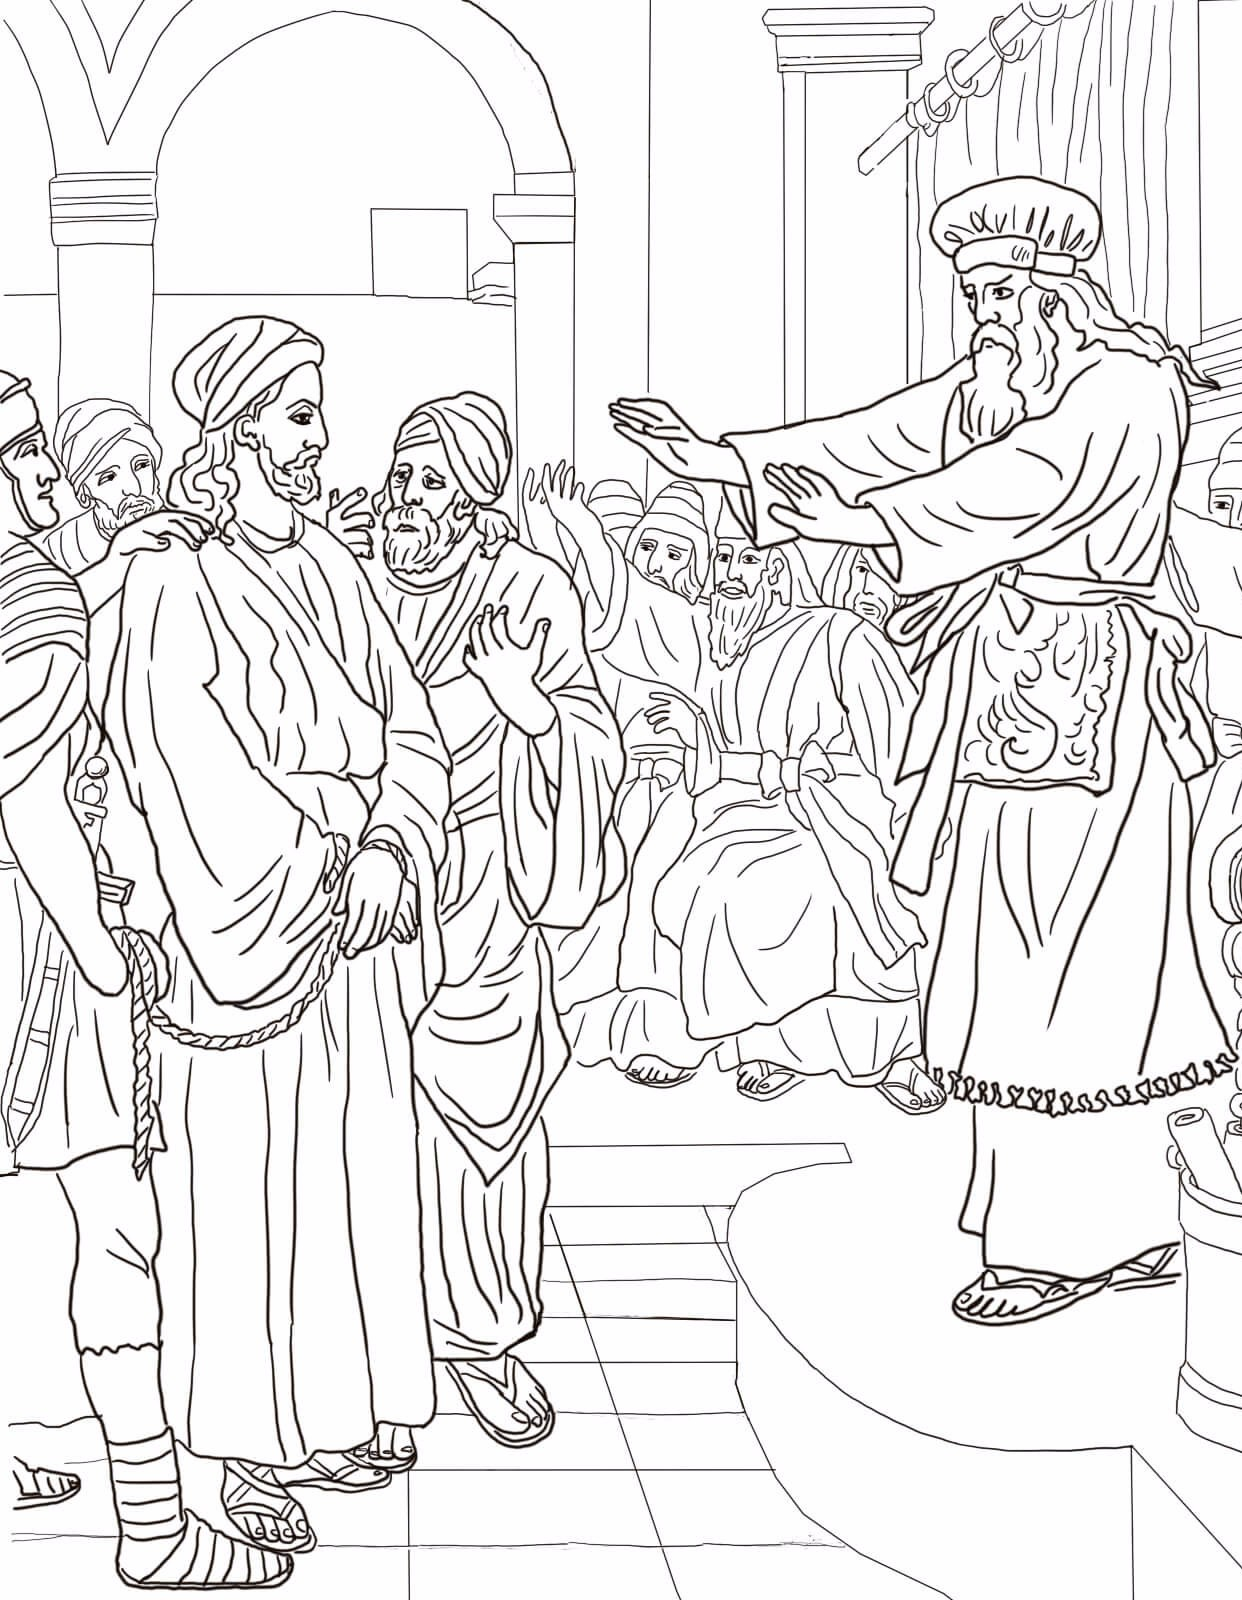 5-jesus-before-caiaphas-trial-coloring-page